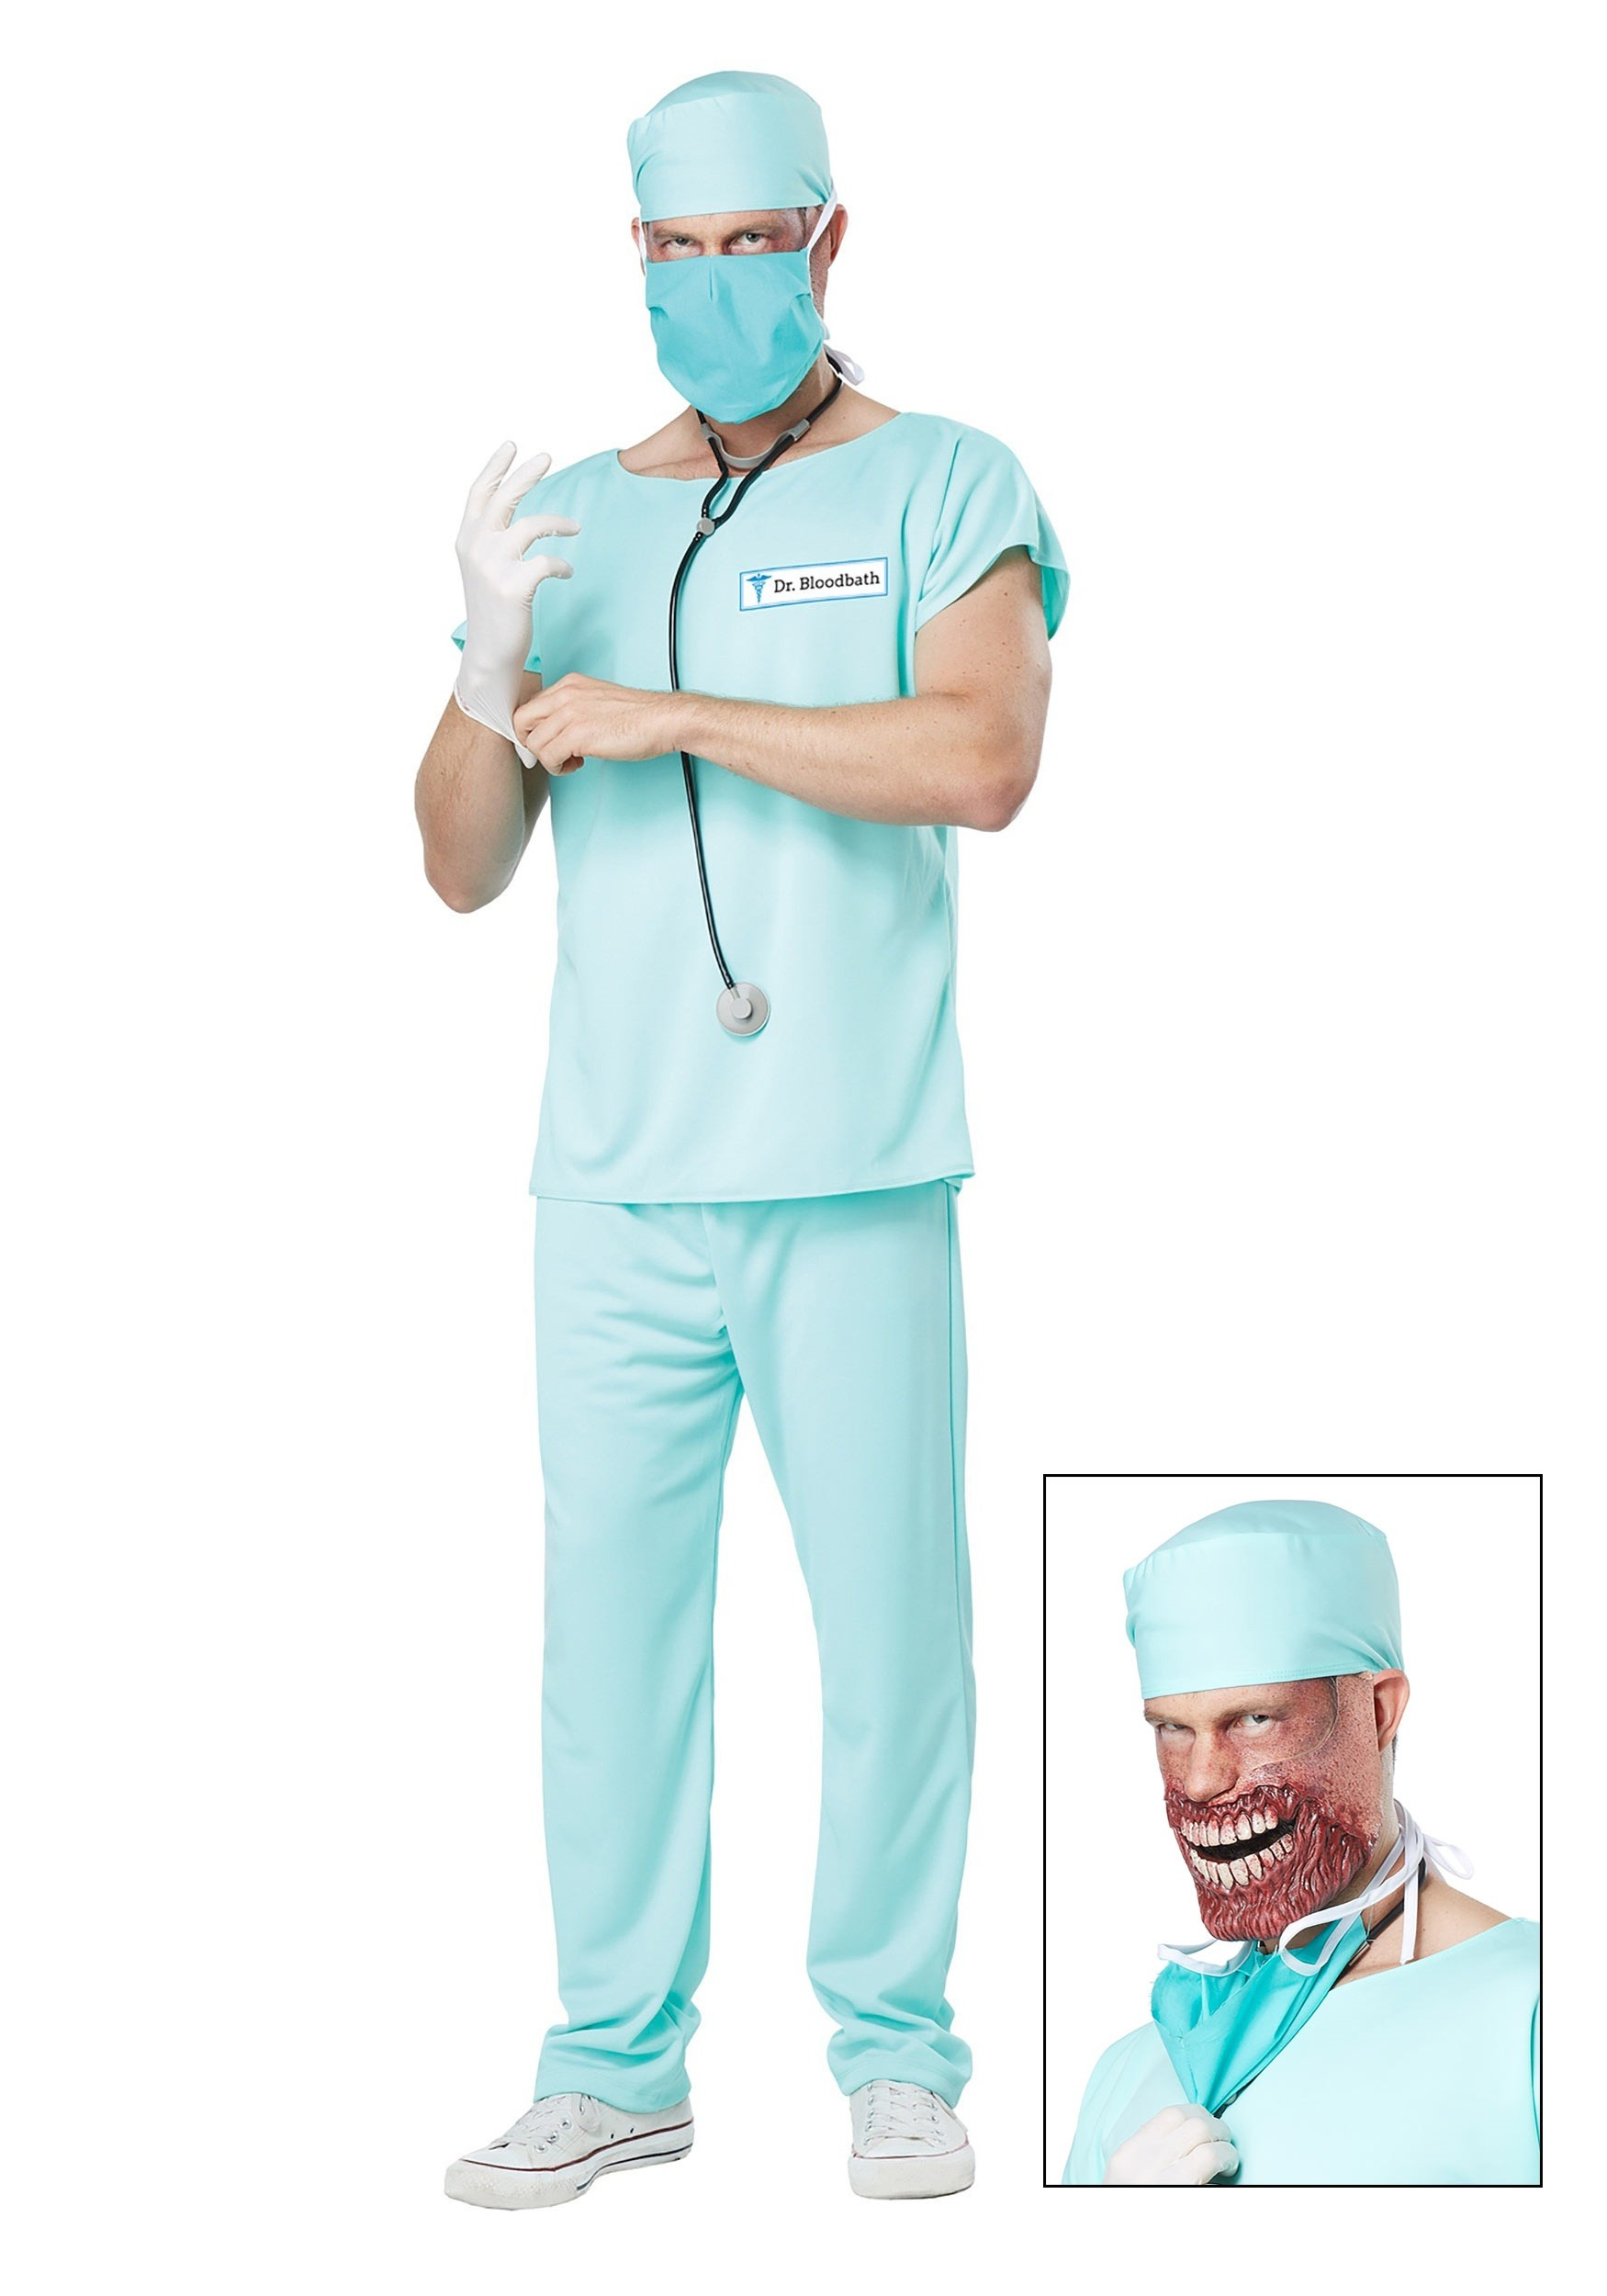 Doctor Costumes & Surgeon Outfits - HalloweenCostumes.com